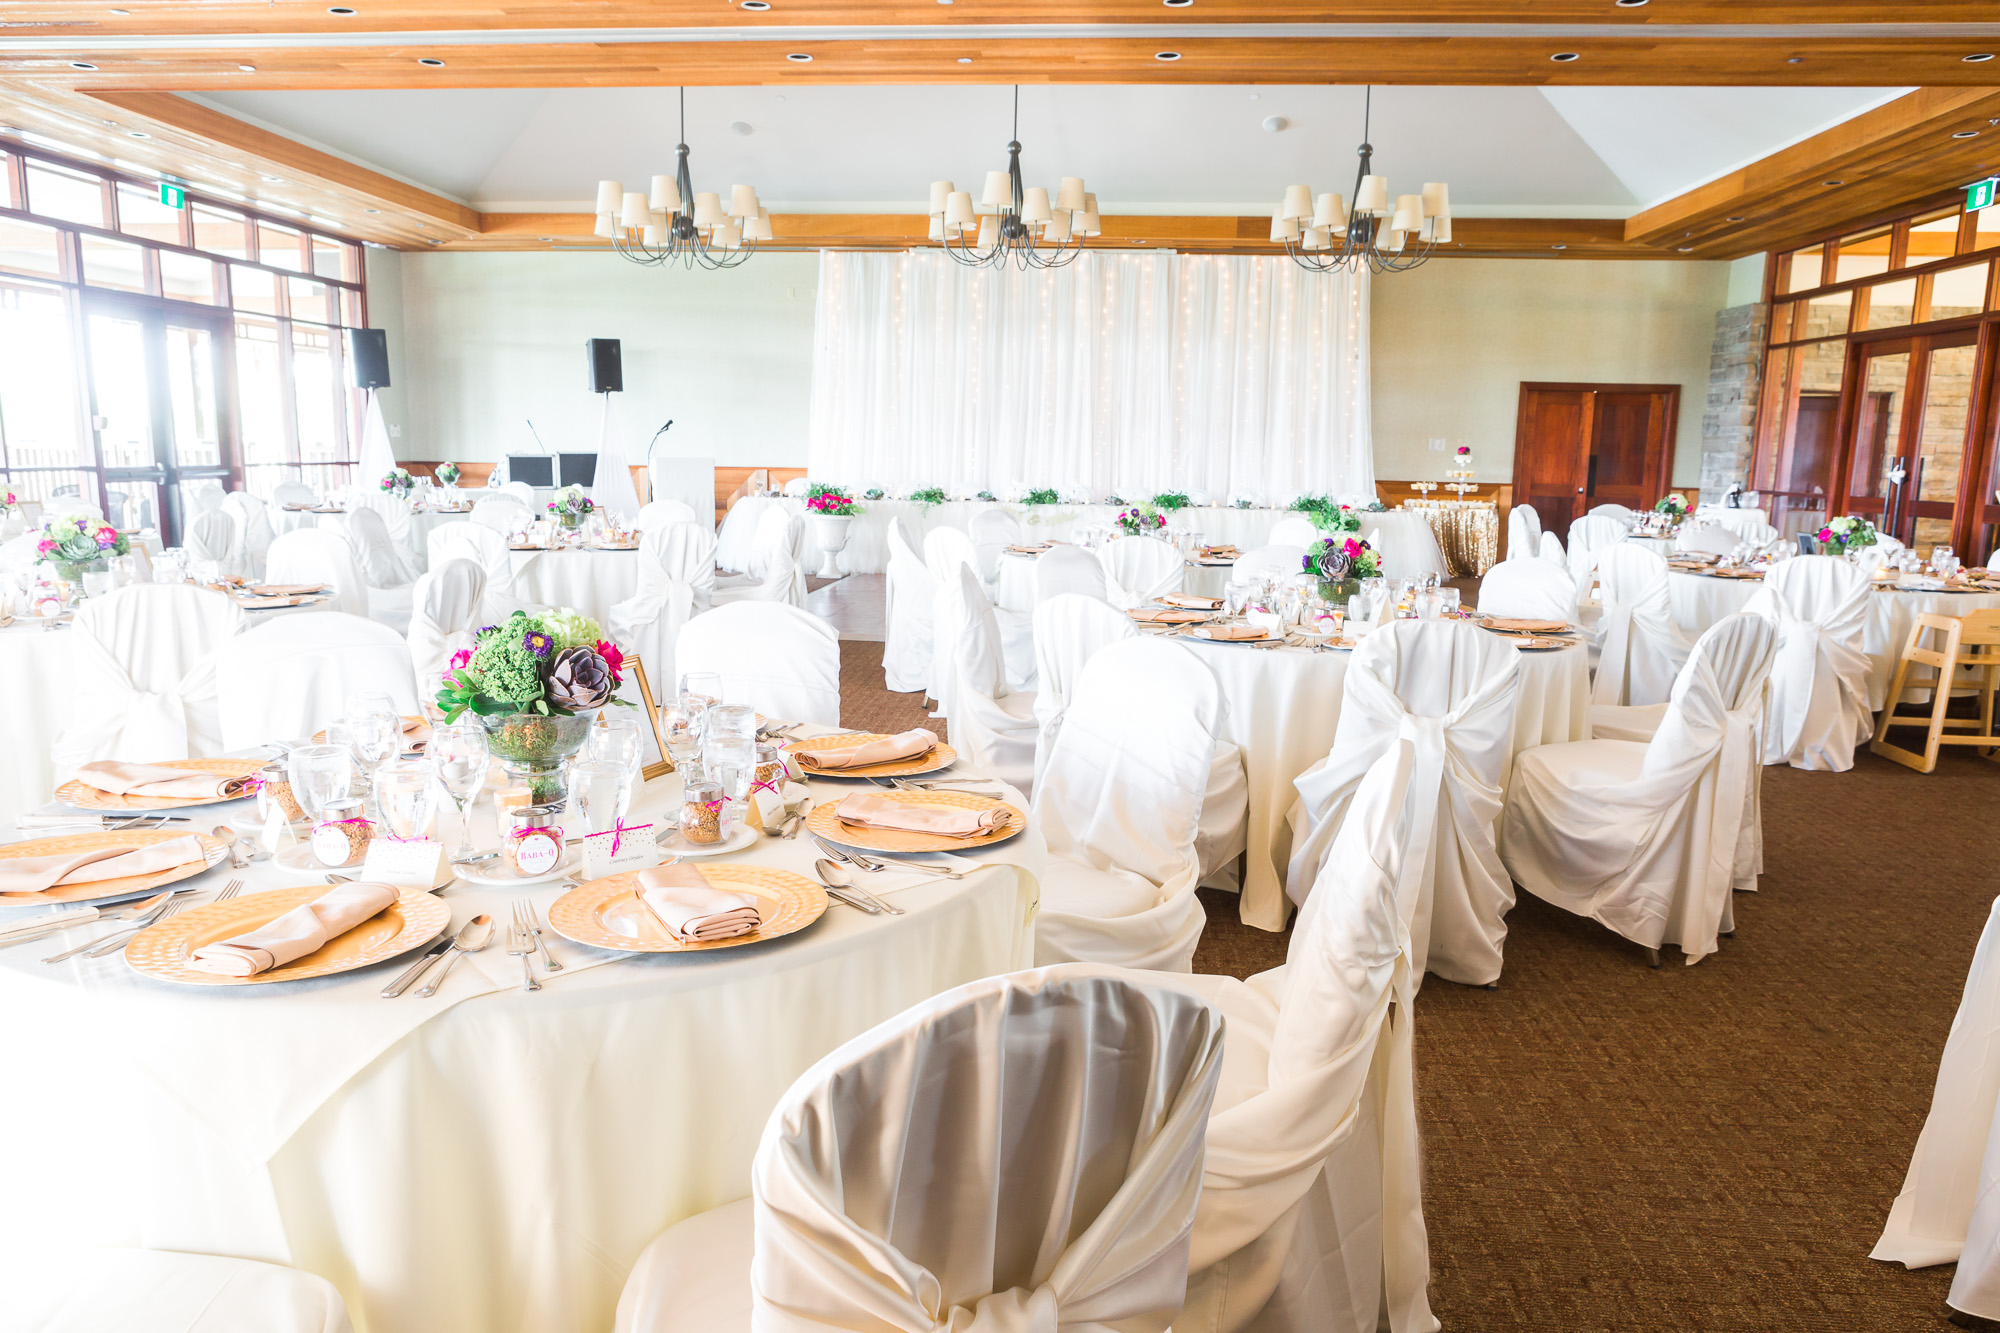 Seating Plan Tips from Niagara Parks Weddings